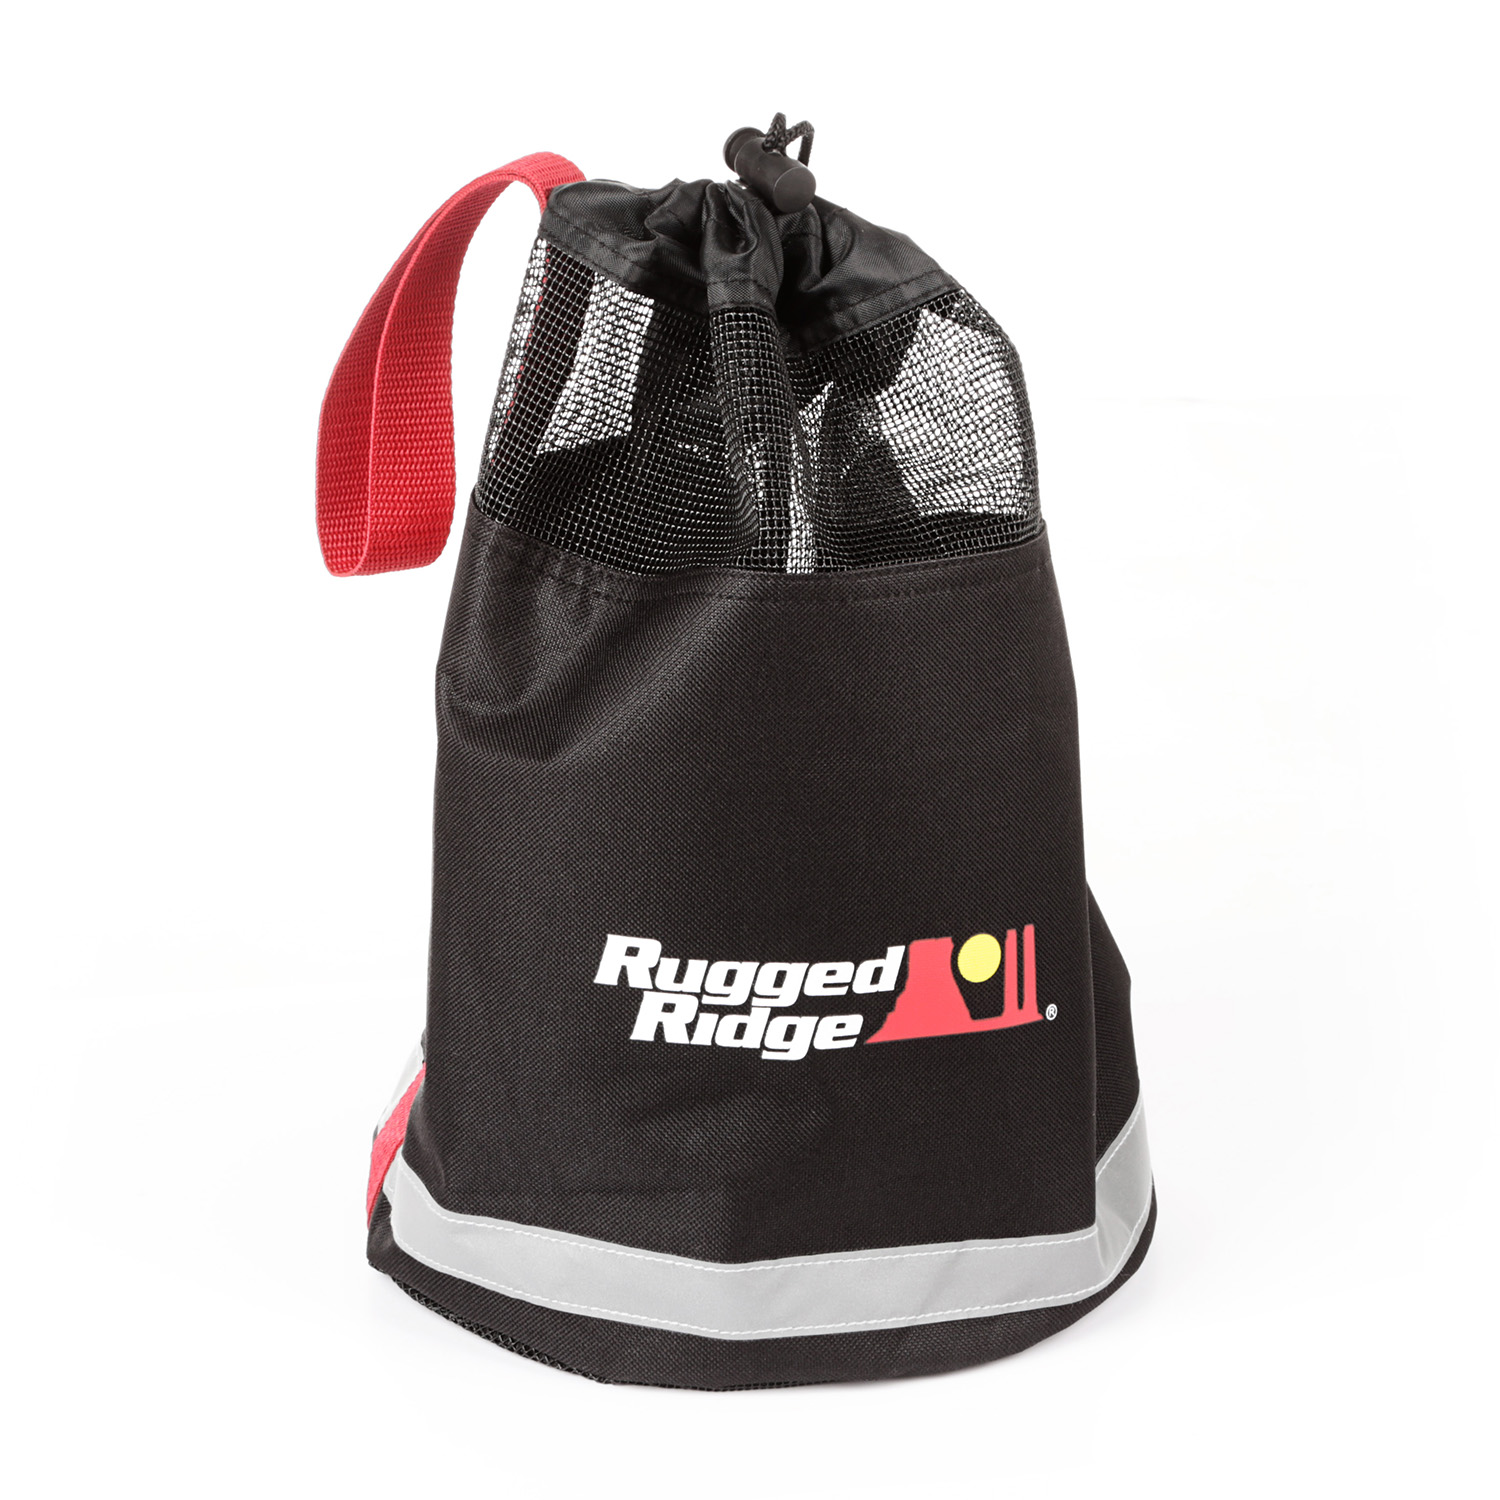 Rugged Ridge Cinch Storage Bag